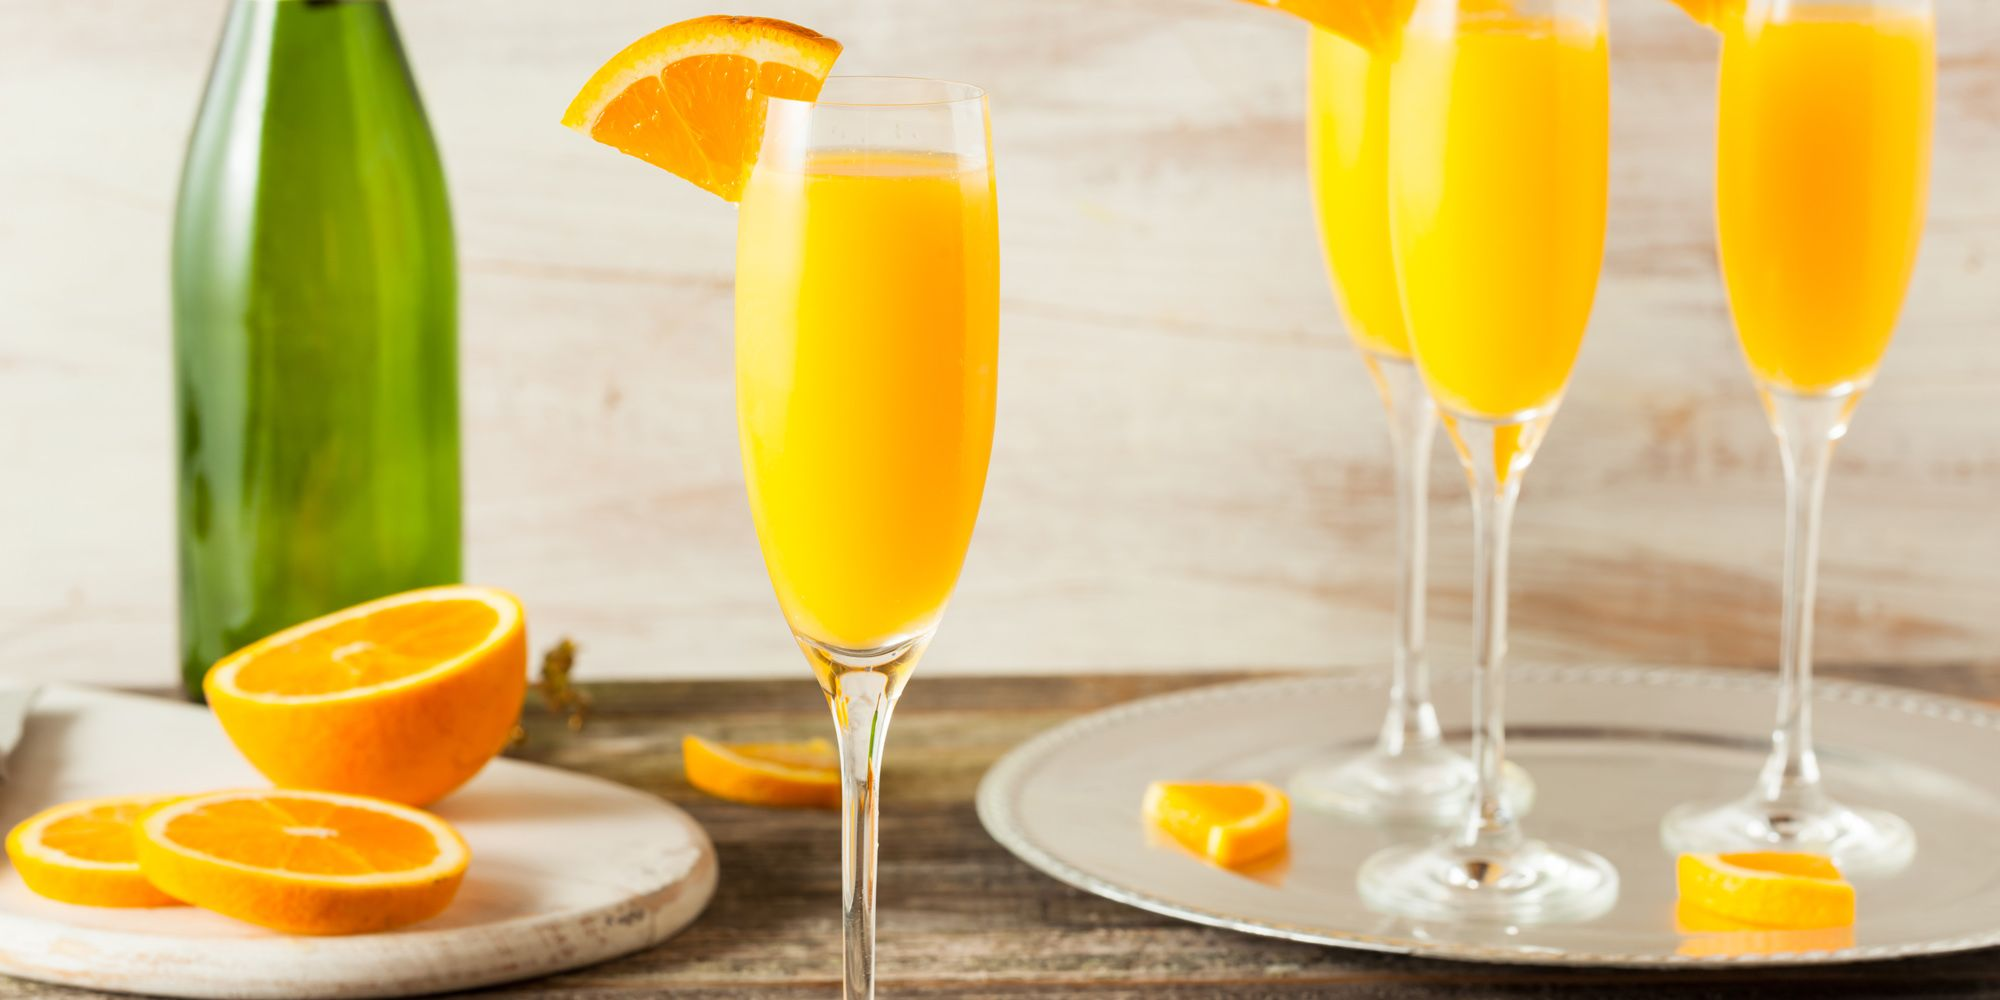 How to Make a Classic Mimosa